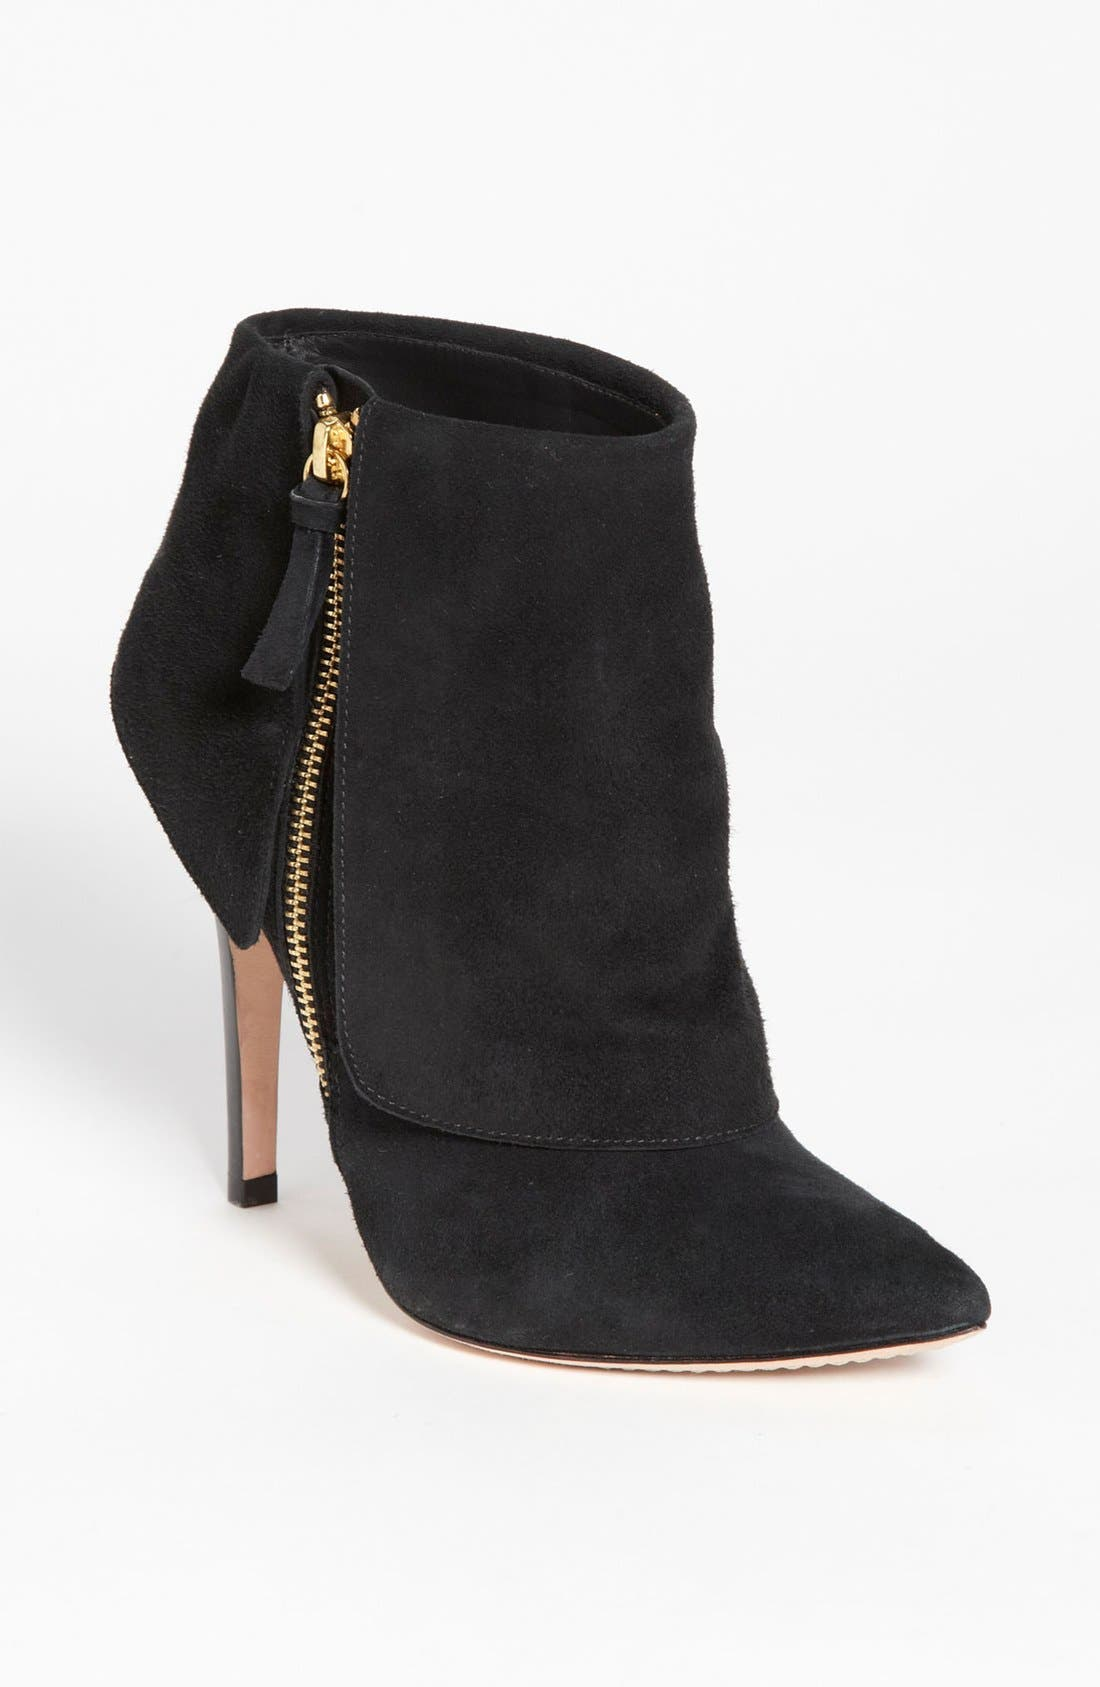 Alternate Image 1 Selected - Alice + Olivia 'Dawson' Boot (Online Only)